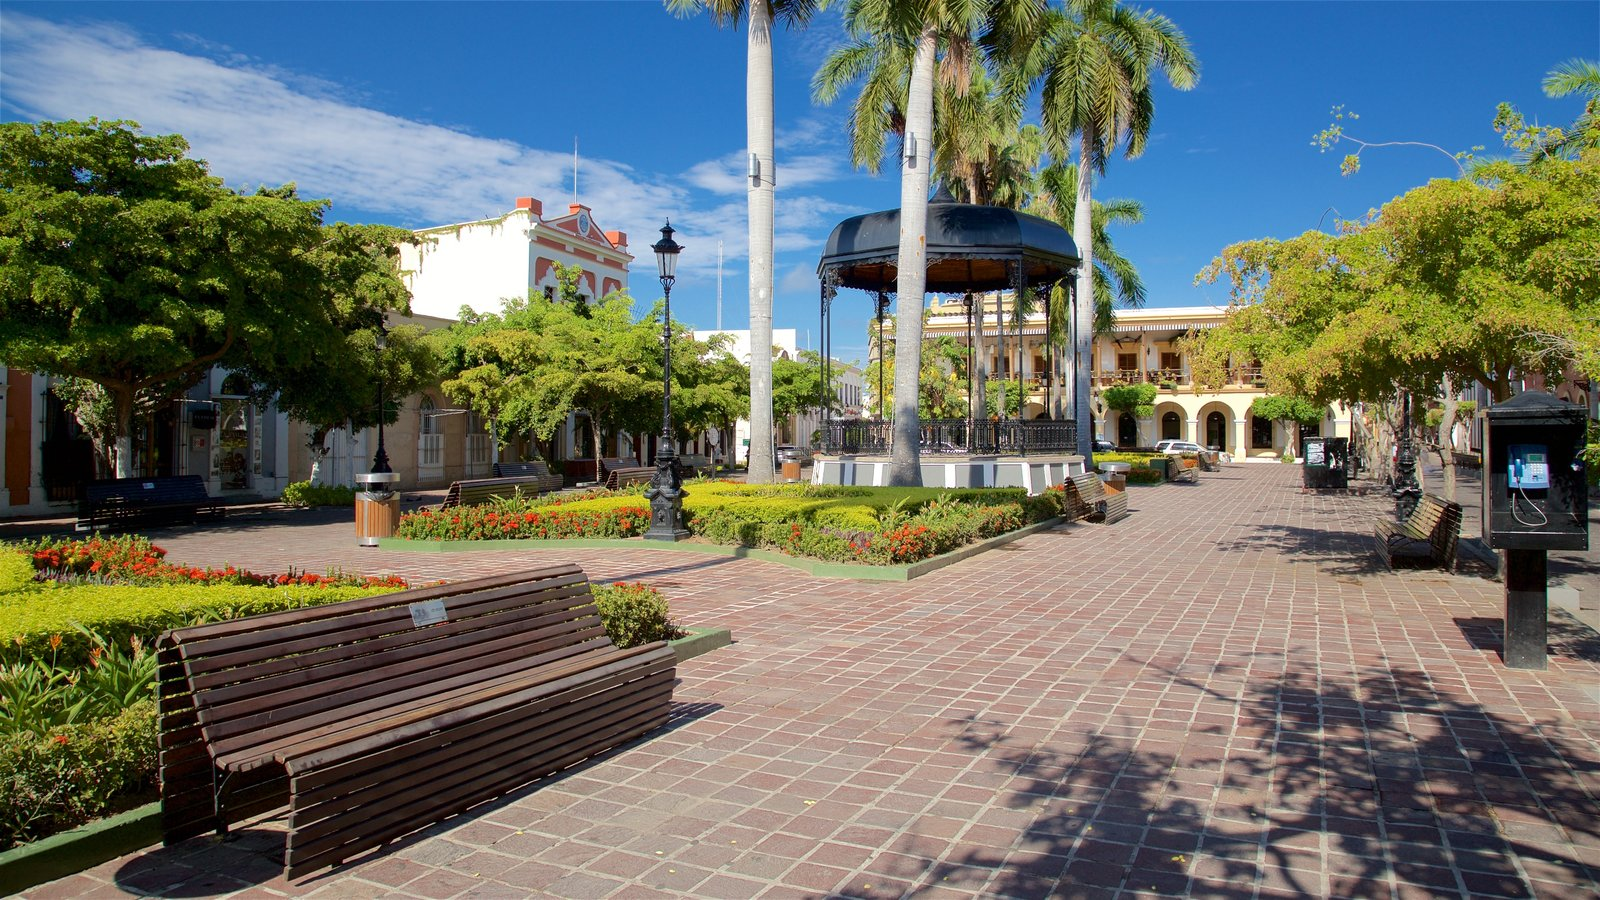 Plaza Machado which includes a square or plaza